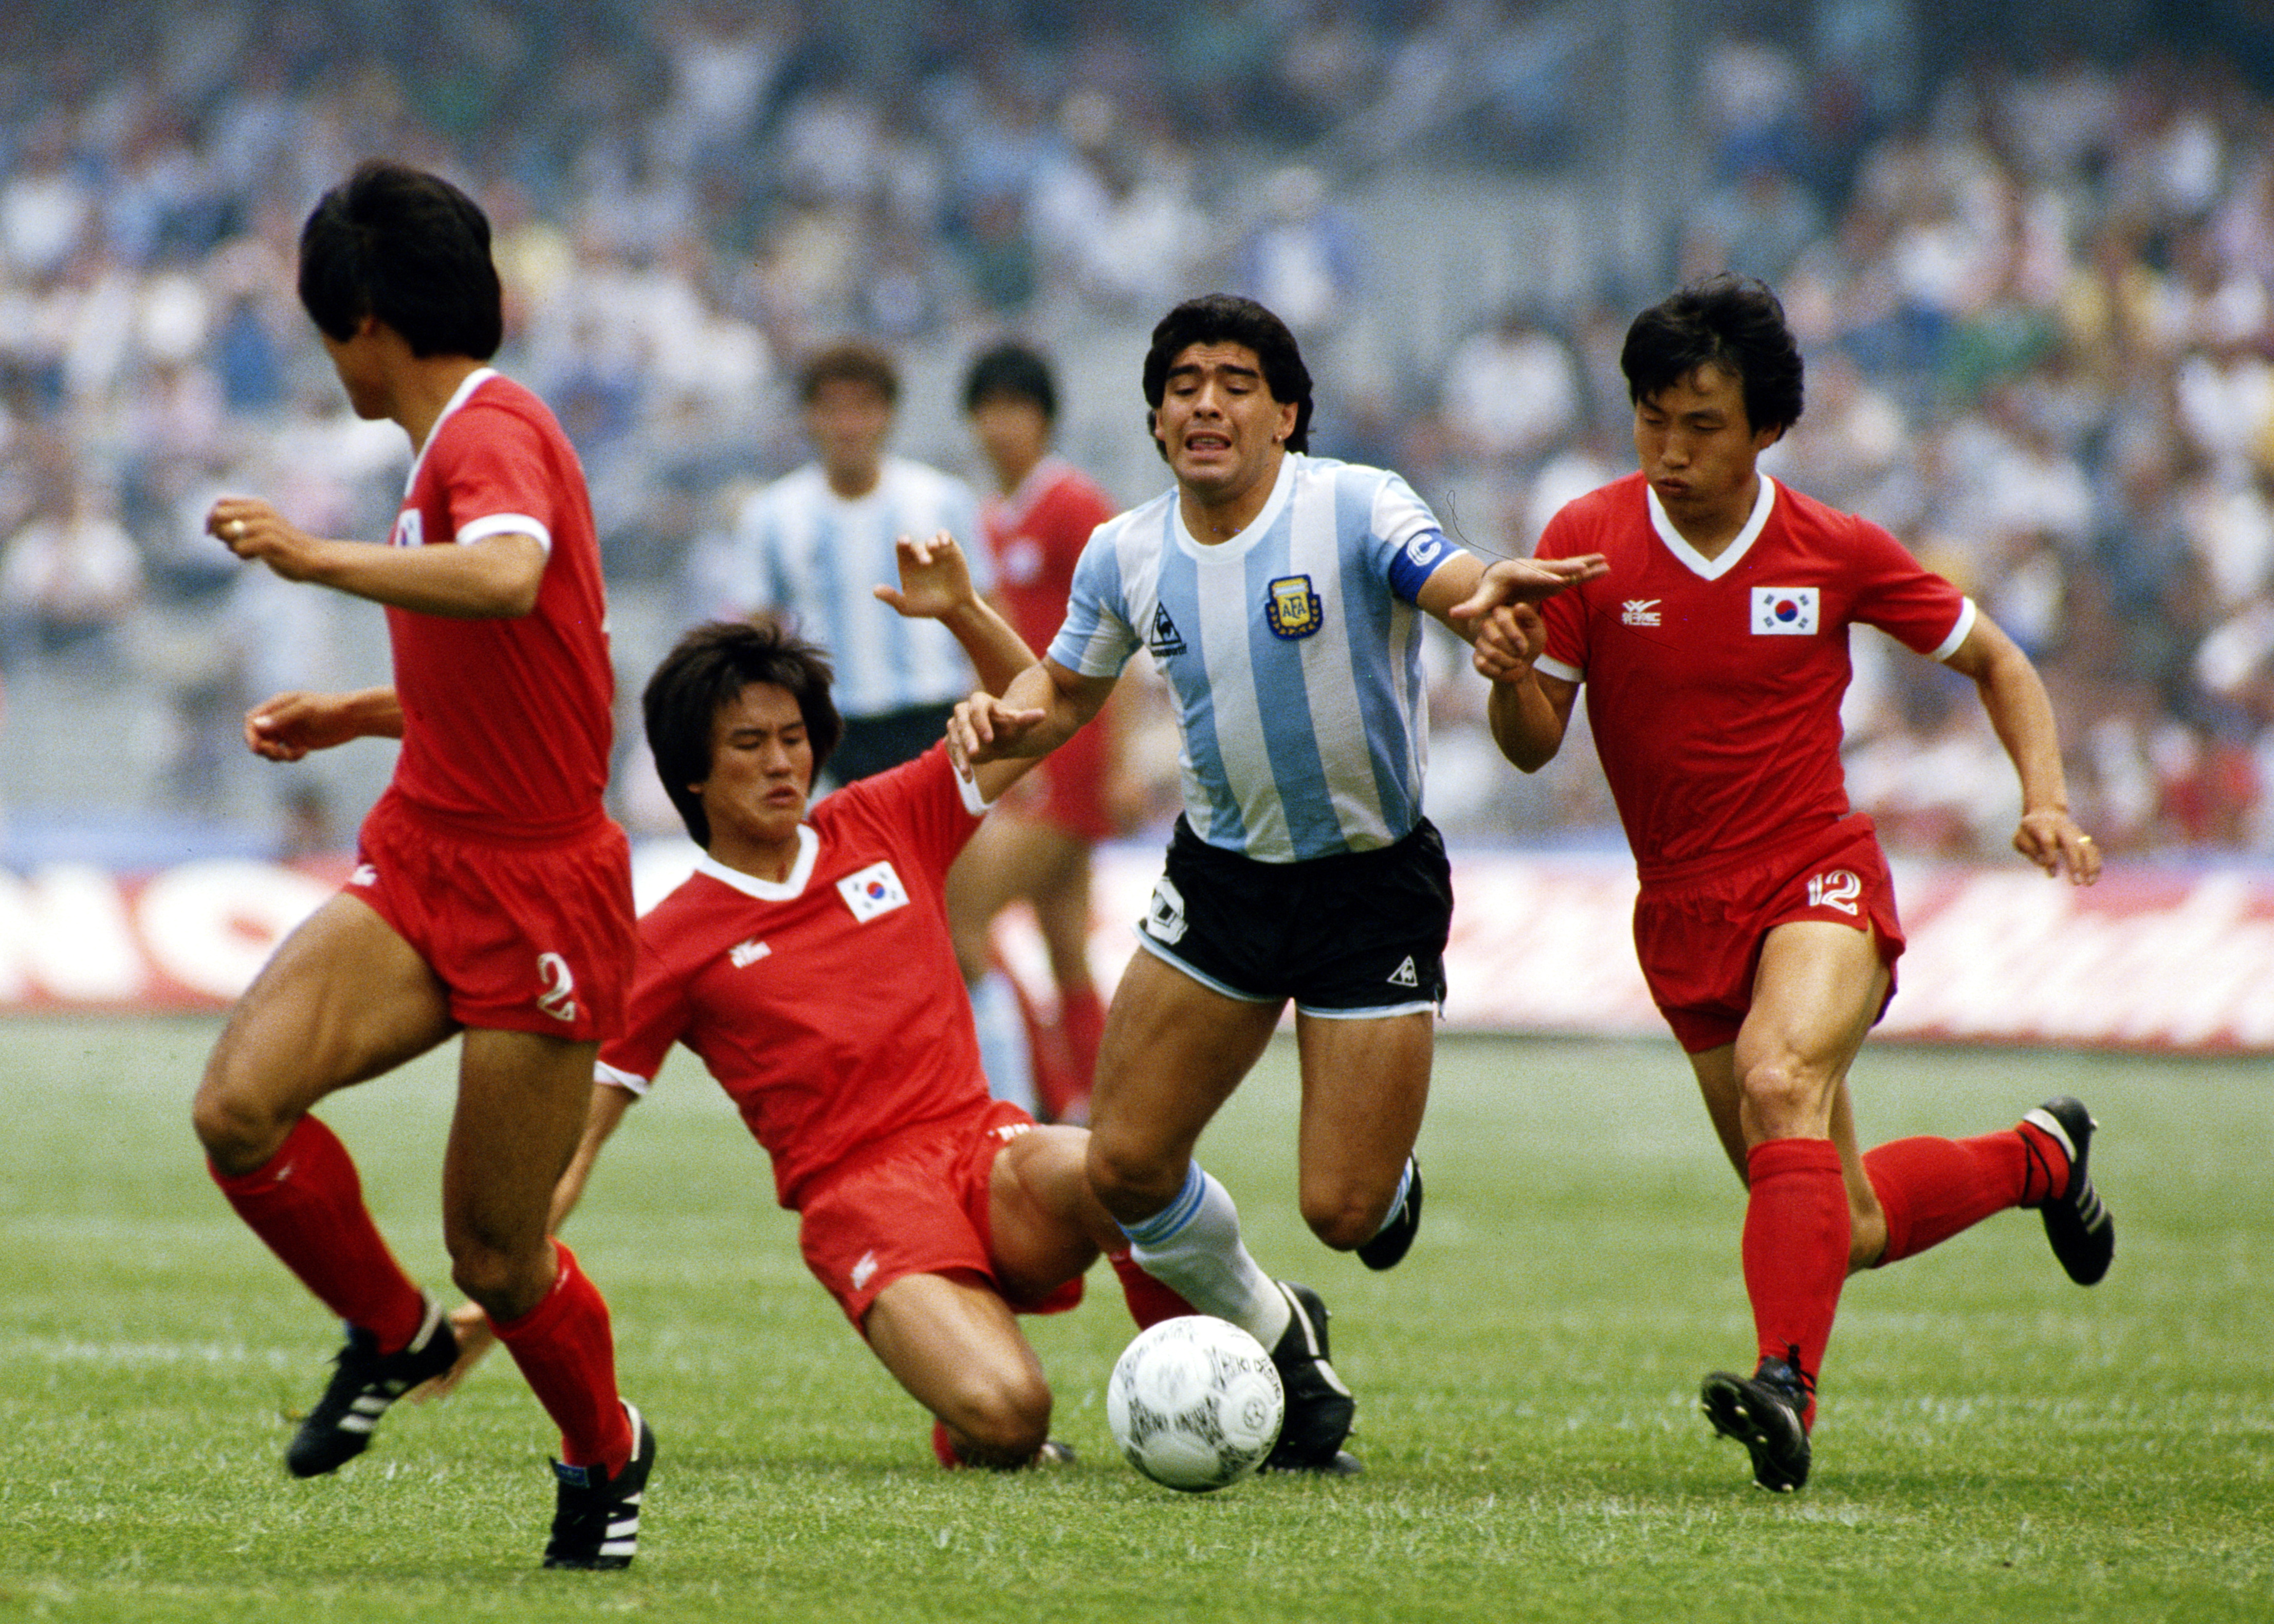 Diego Maradona of Argentina is fouled by players from the Republic of Korea during the Group A match at the 1986 FIFA World Cup on 2 June 1986 at the Olimpico Stadium in Mexico City, Mexico. Argentina defeated the Republic of Korea 3-1. (Photo by David Cannon/Getty Images)